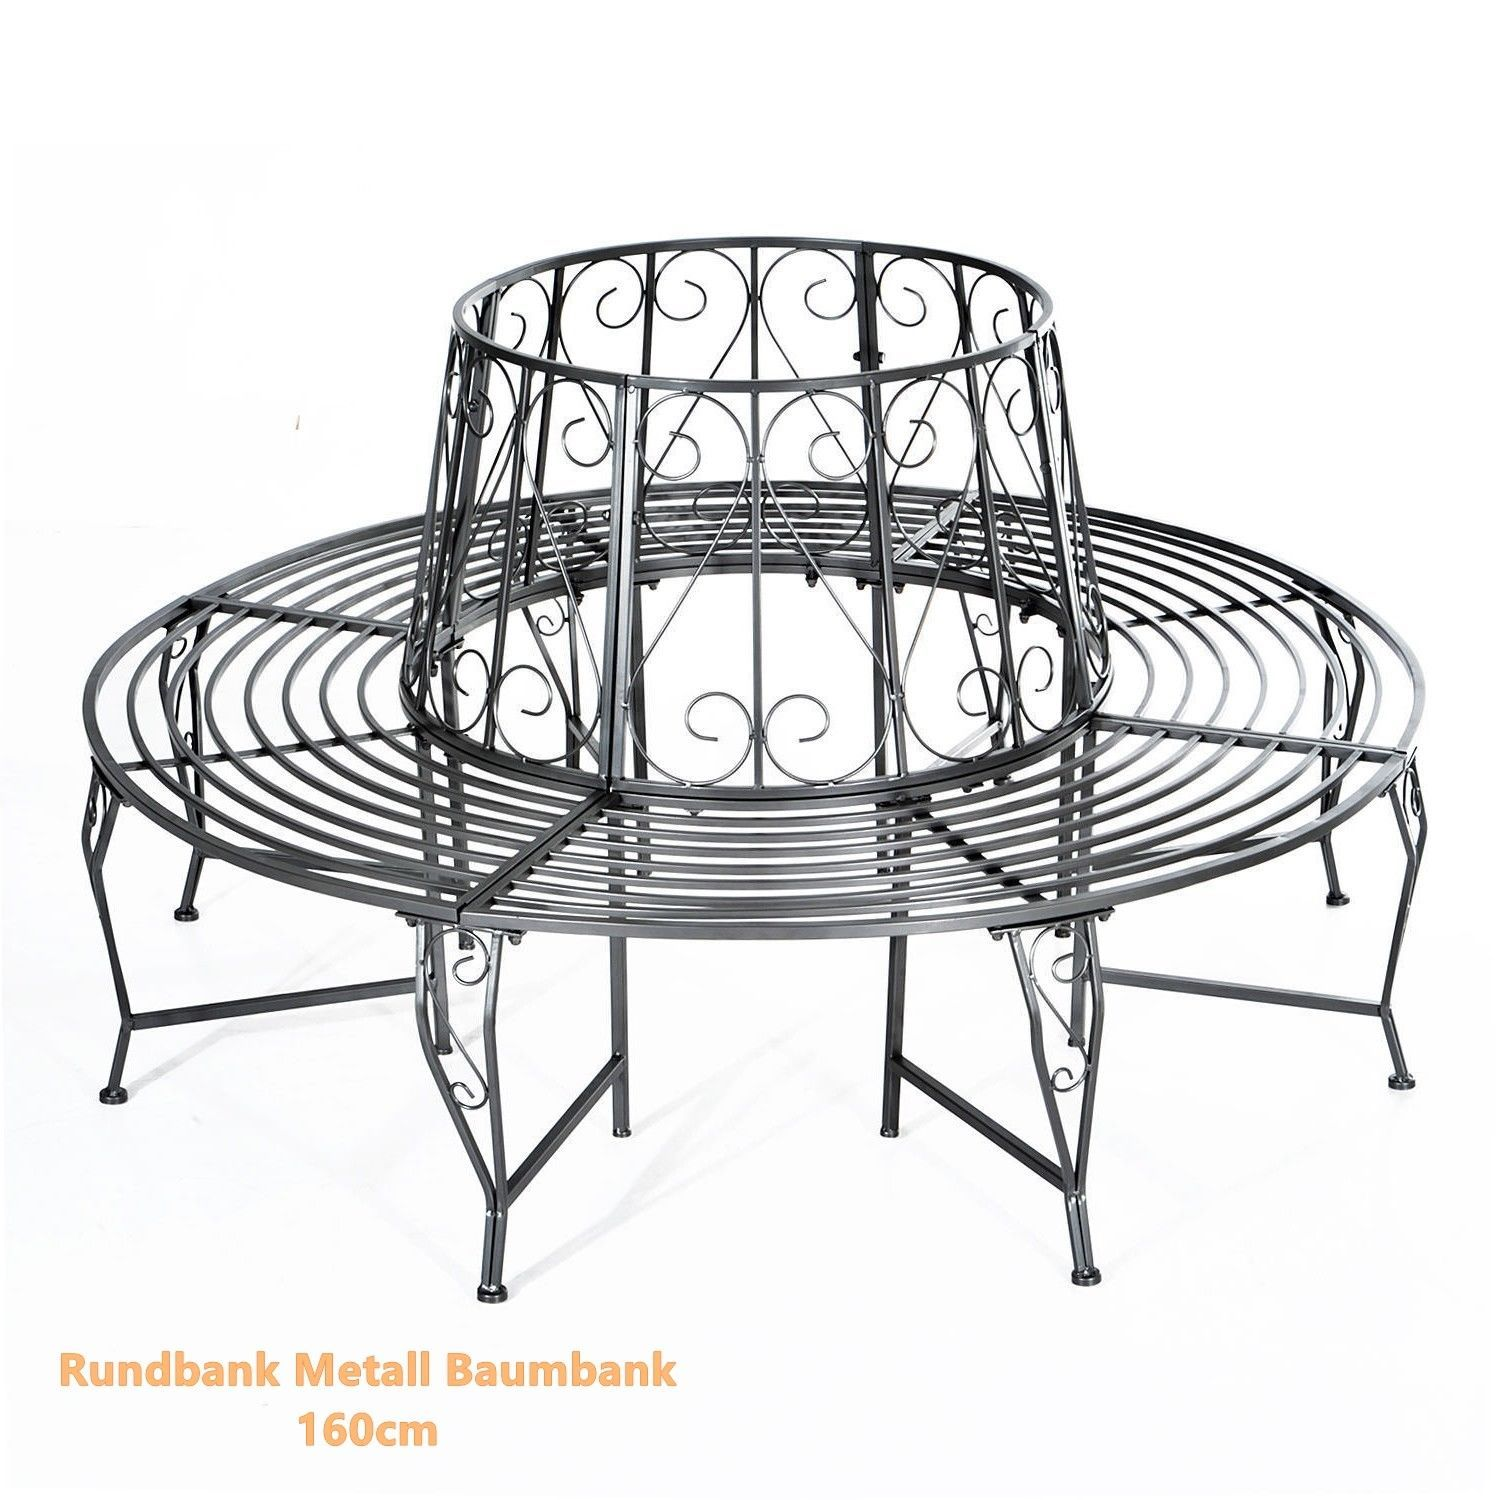 Rundbank Metall Baumbank Sitzbank Gartenbank And 50 Similar Items